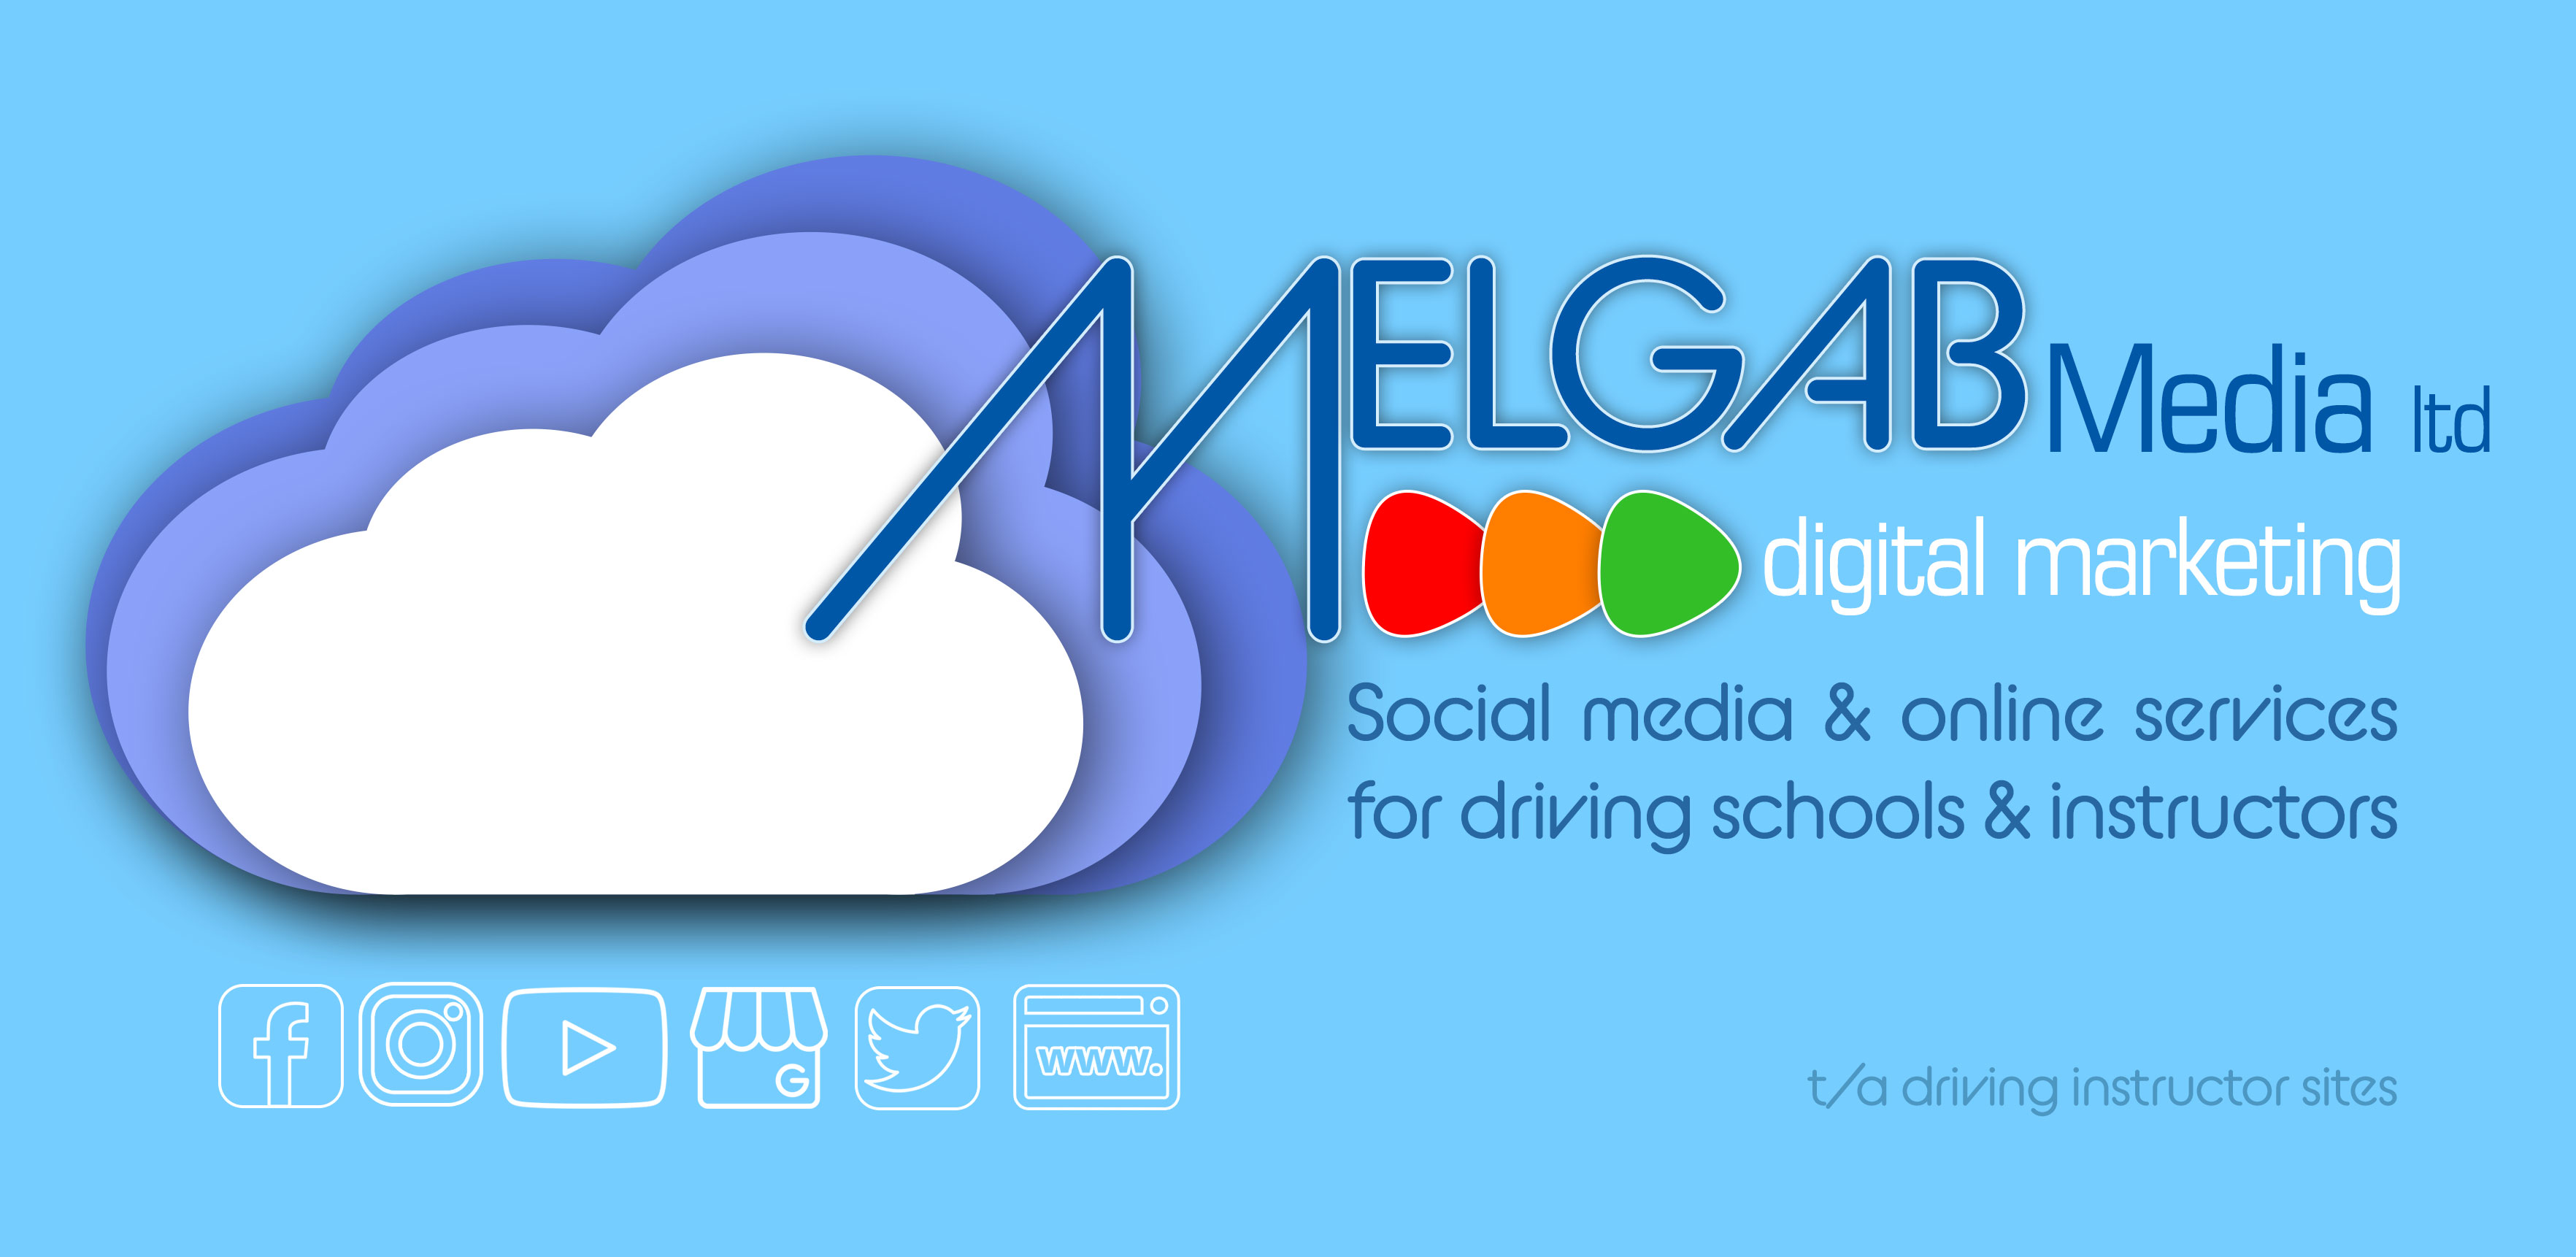 digitial marketing and websites for driving instructors